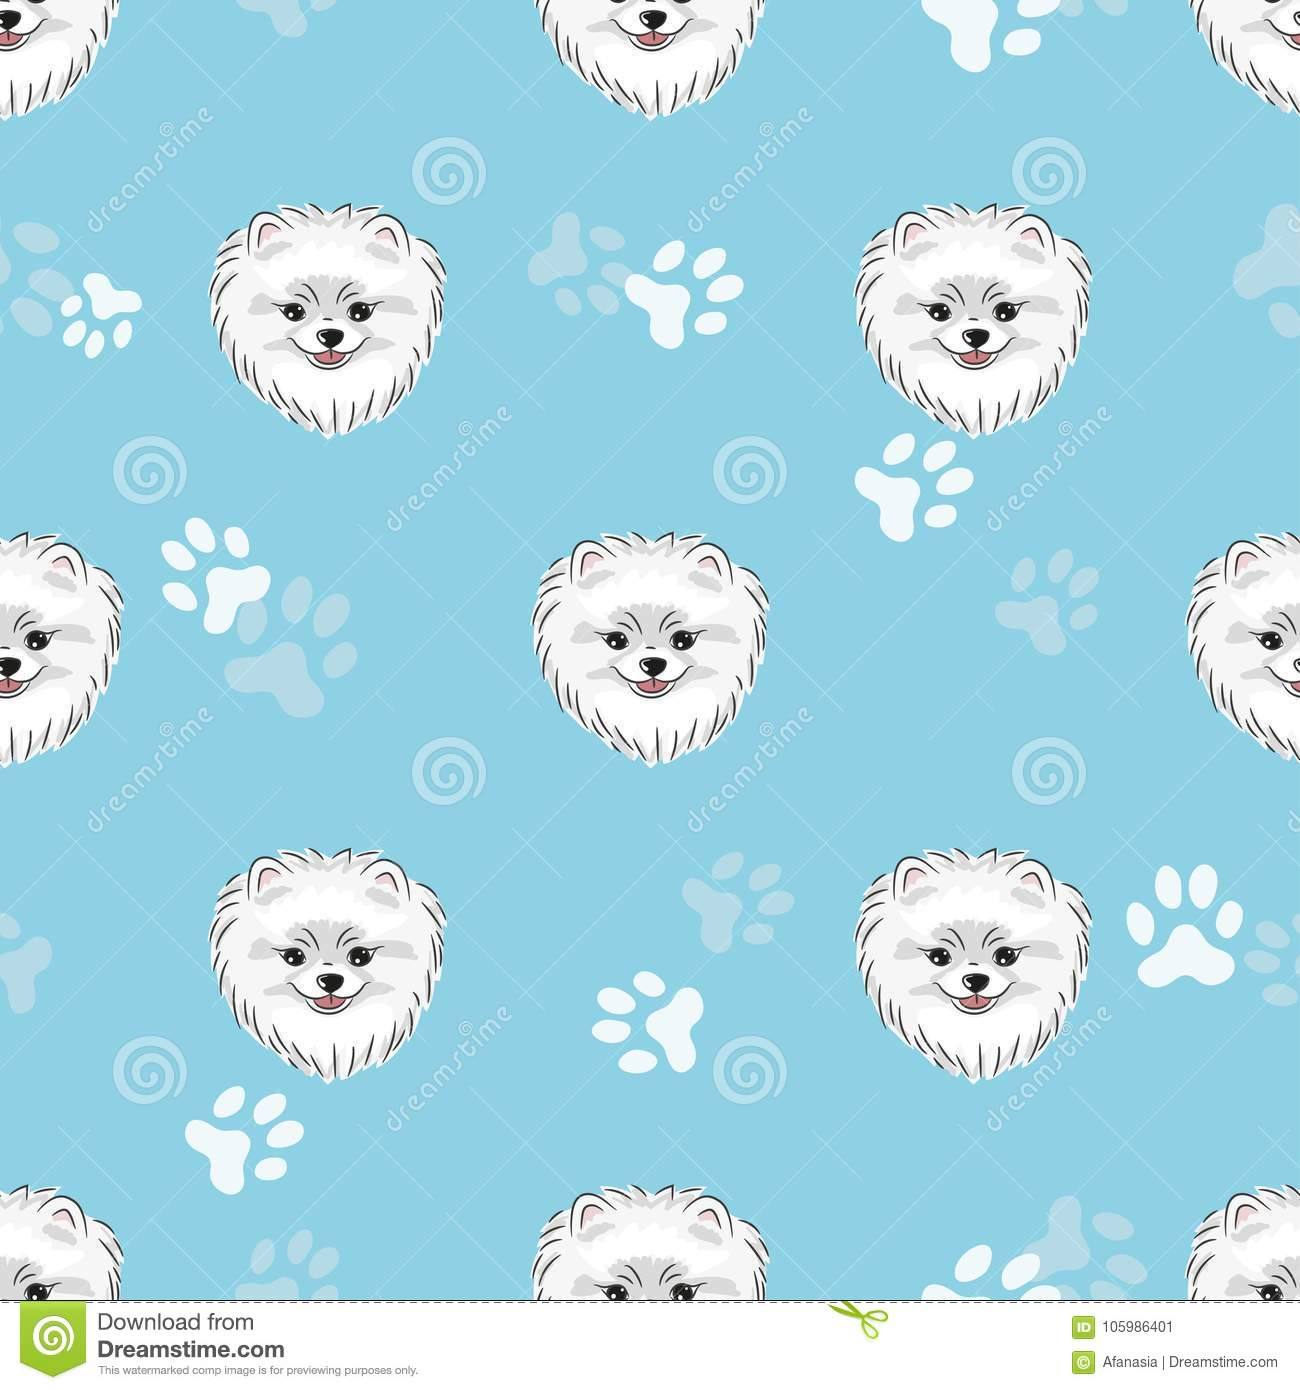 Seamless Pattern With Cute Pomeranian Puppy Stock Vector Illustration Of Cartoon Wallpaper 105986401